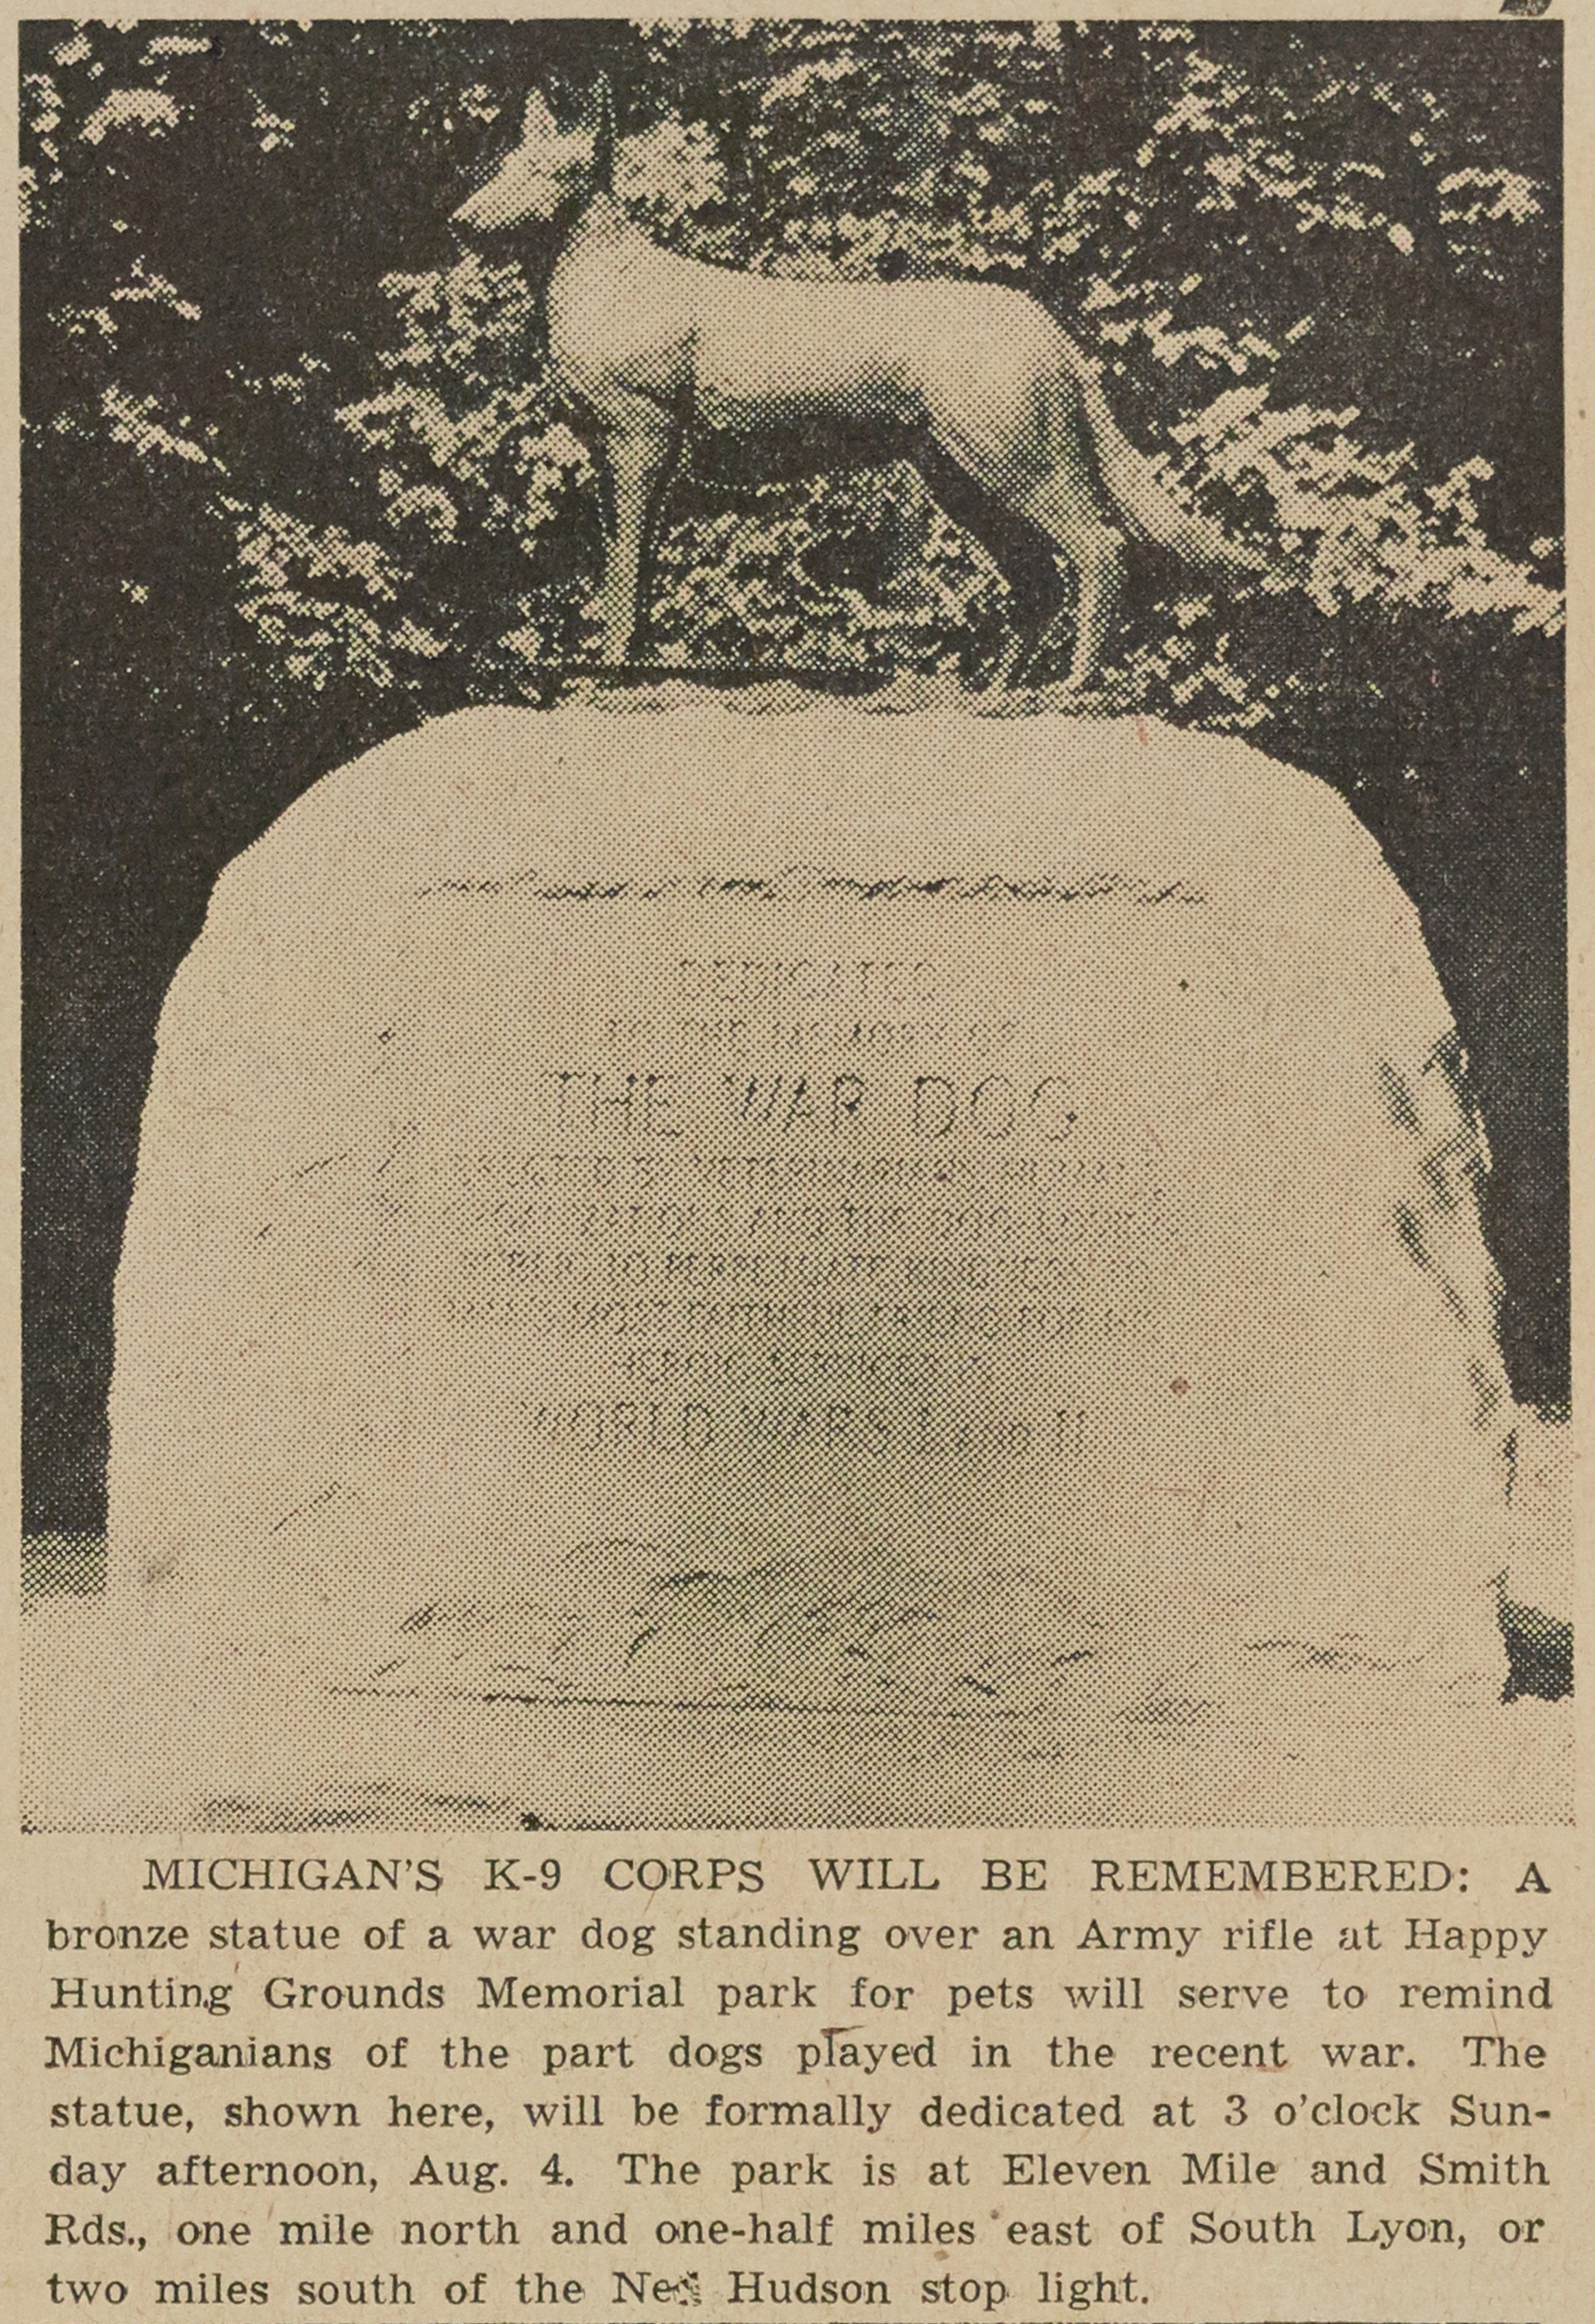 Michigan's K-9 Corps Will Be Remembered image